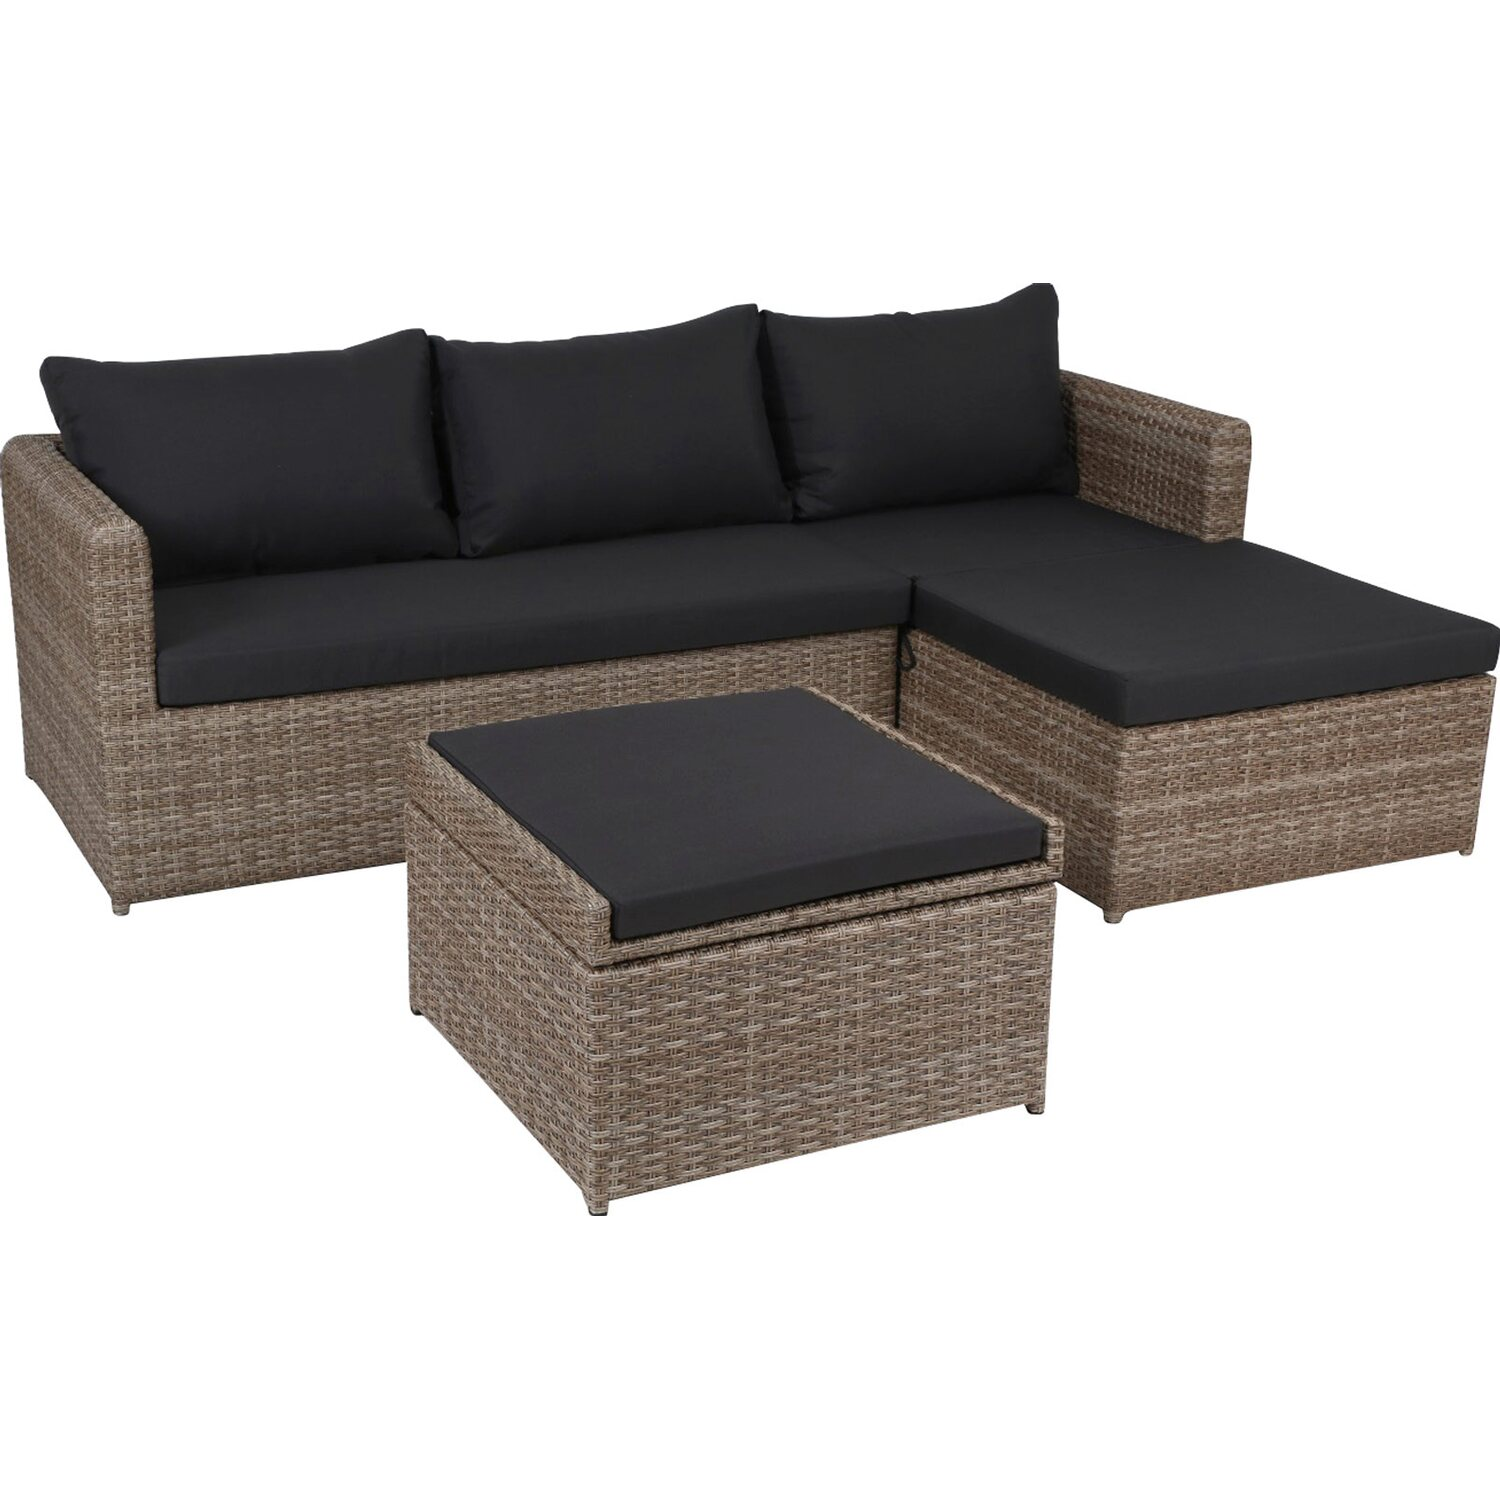 Greemotion garten lounge set louisville polyrattan braun 3 for Lounge gartenmobel rattan